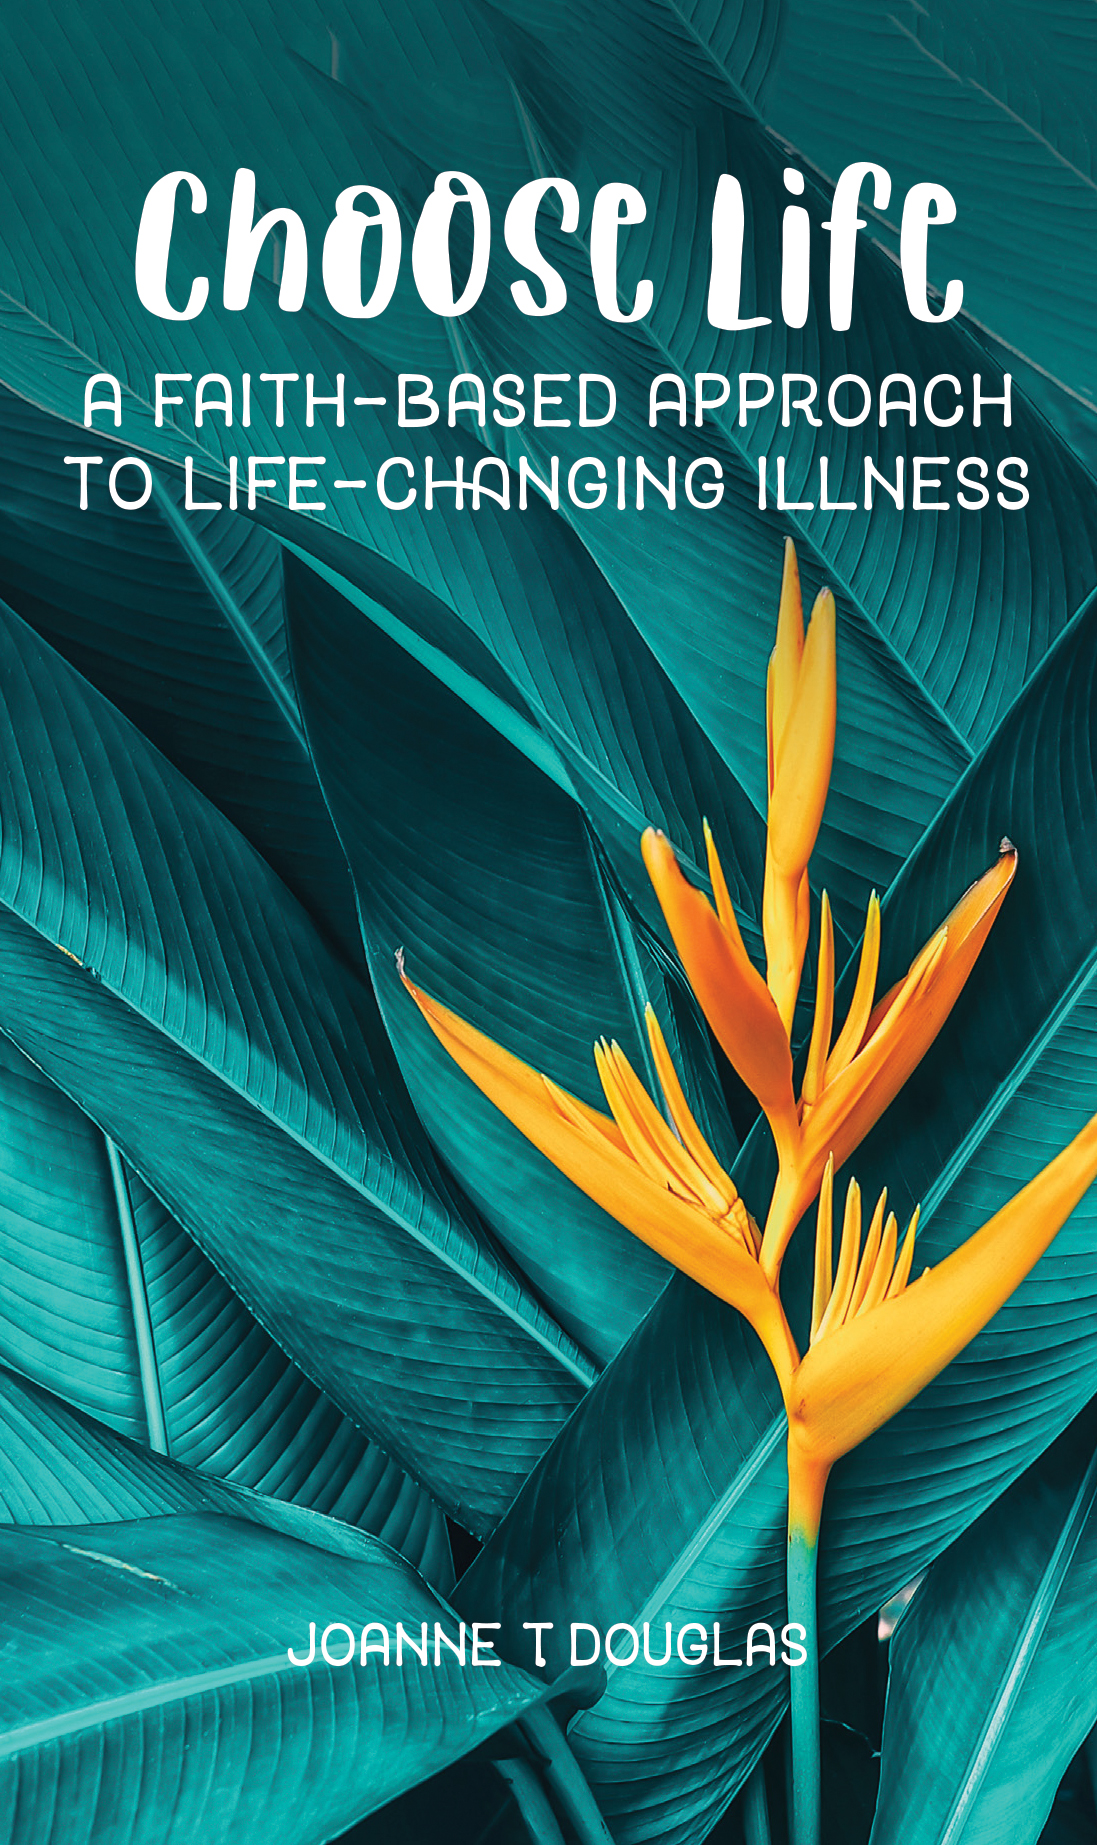 Choose Life: A Faith-Based Approach to Life-Changing Illness